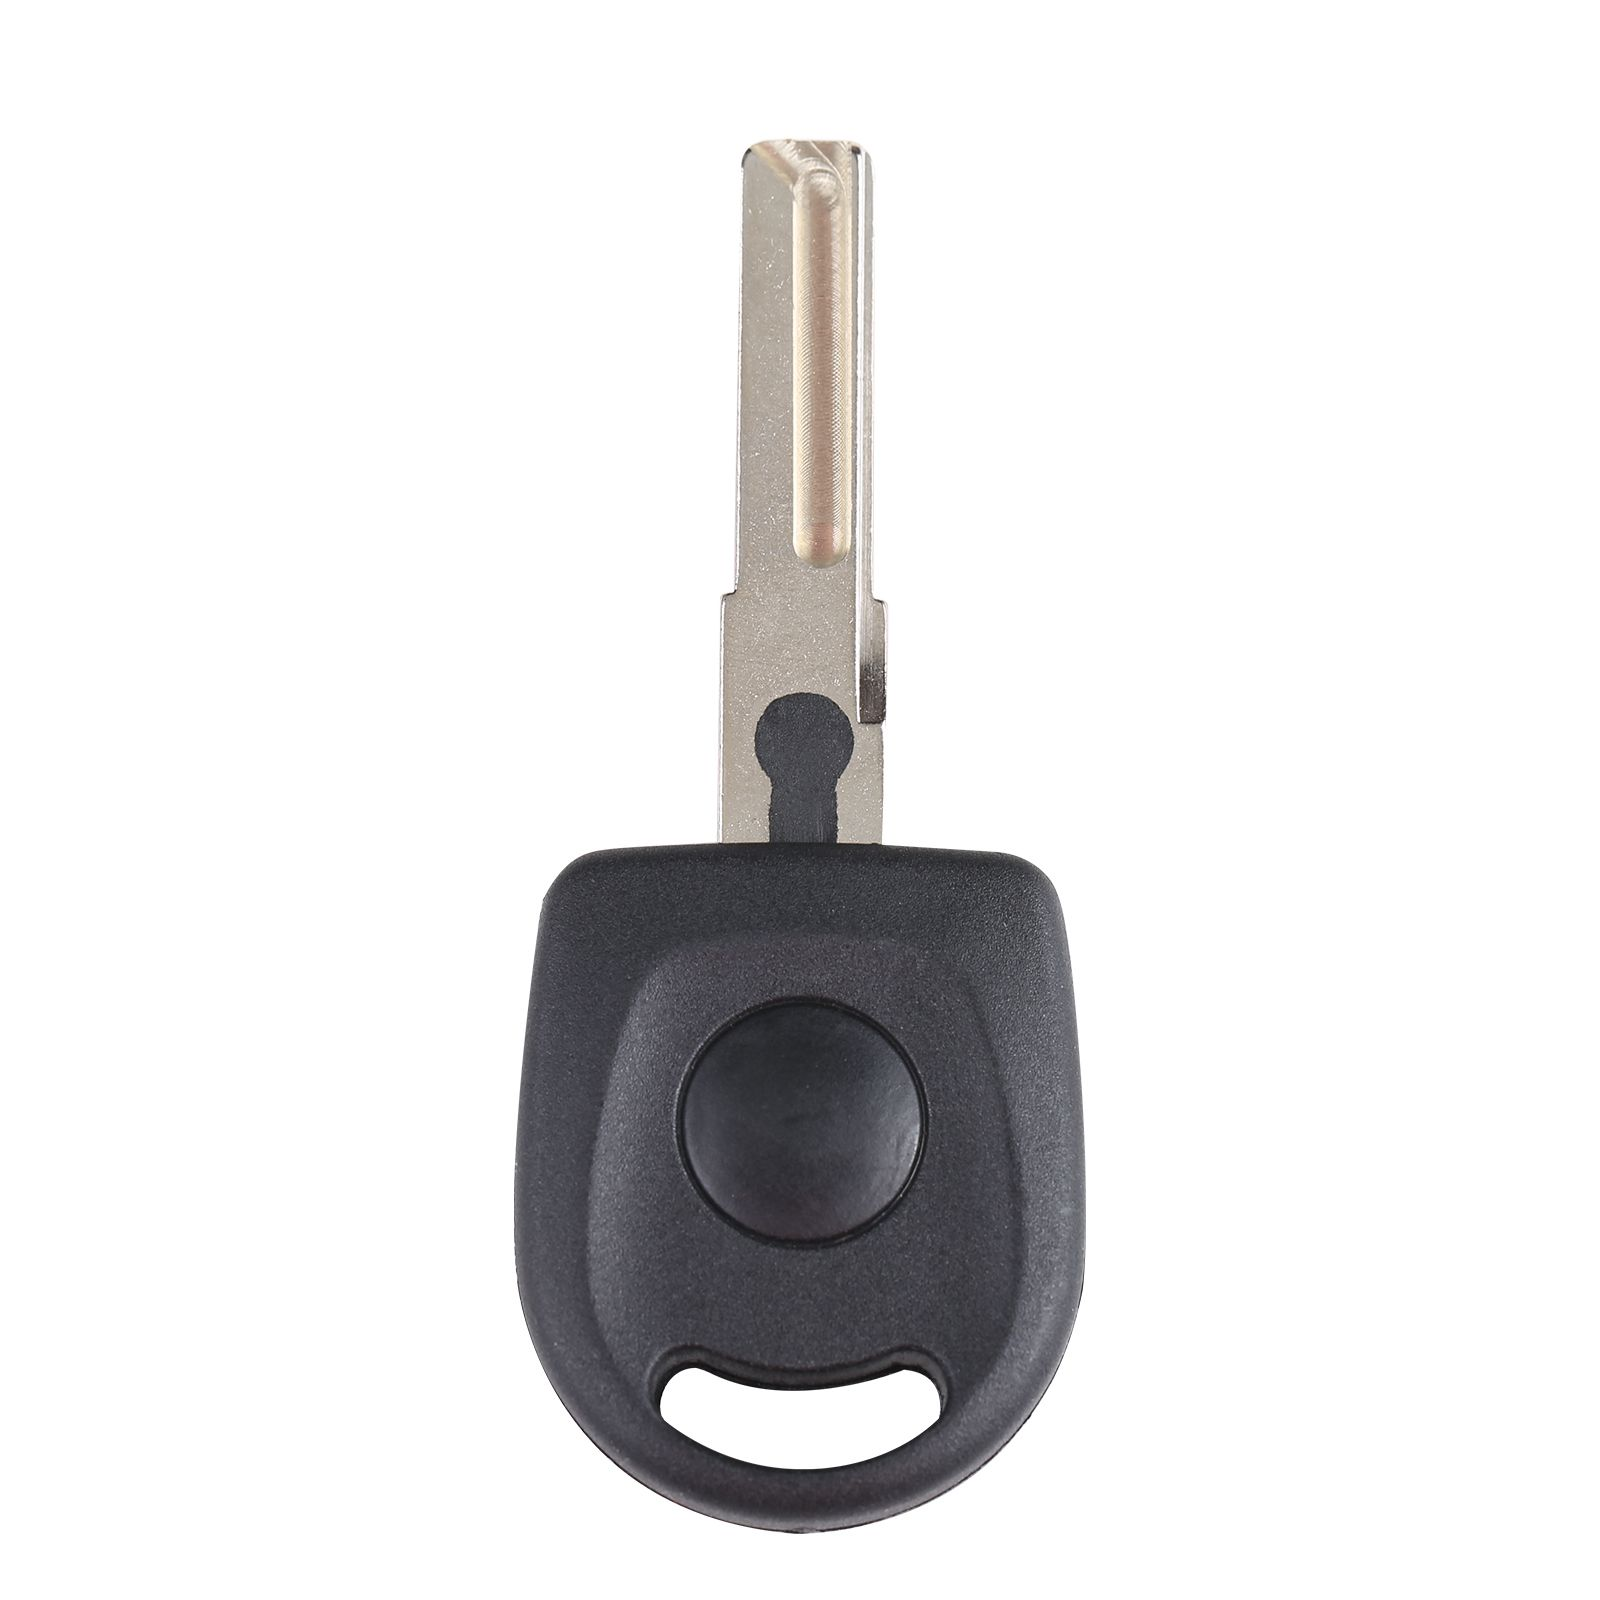 2 in 1 HU66 V.2 Professional Locksmith Tool for Audi VW HU66 Lock Pick and Decoder Quick Open Tool